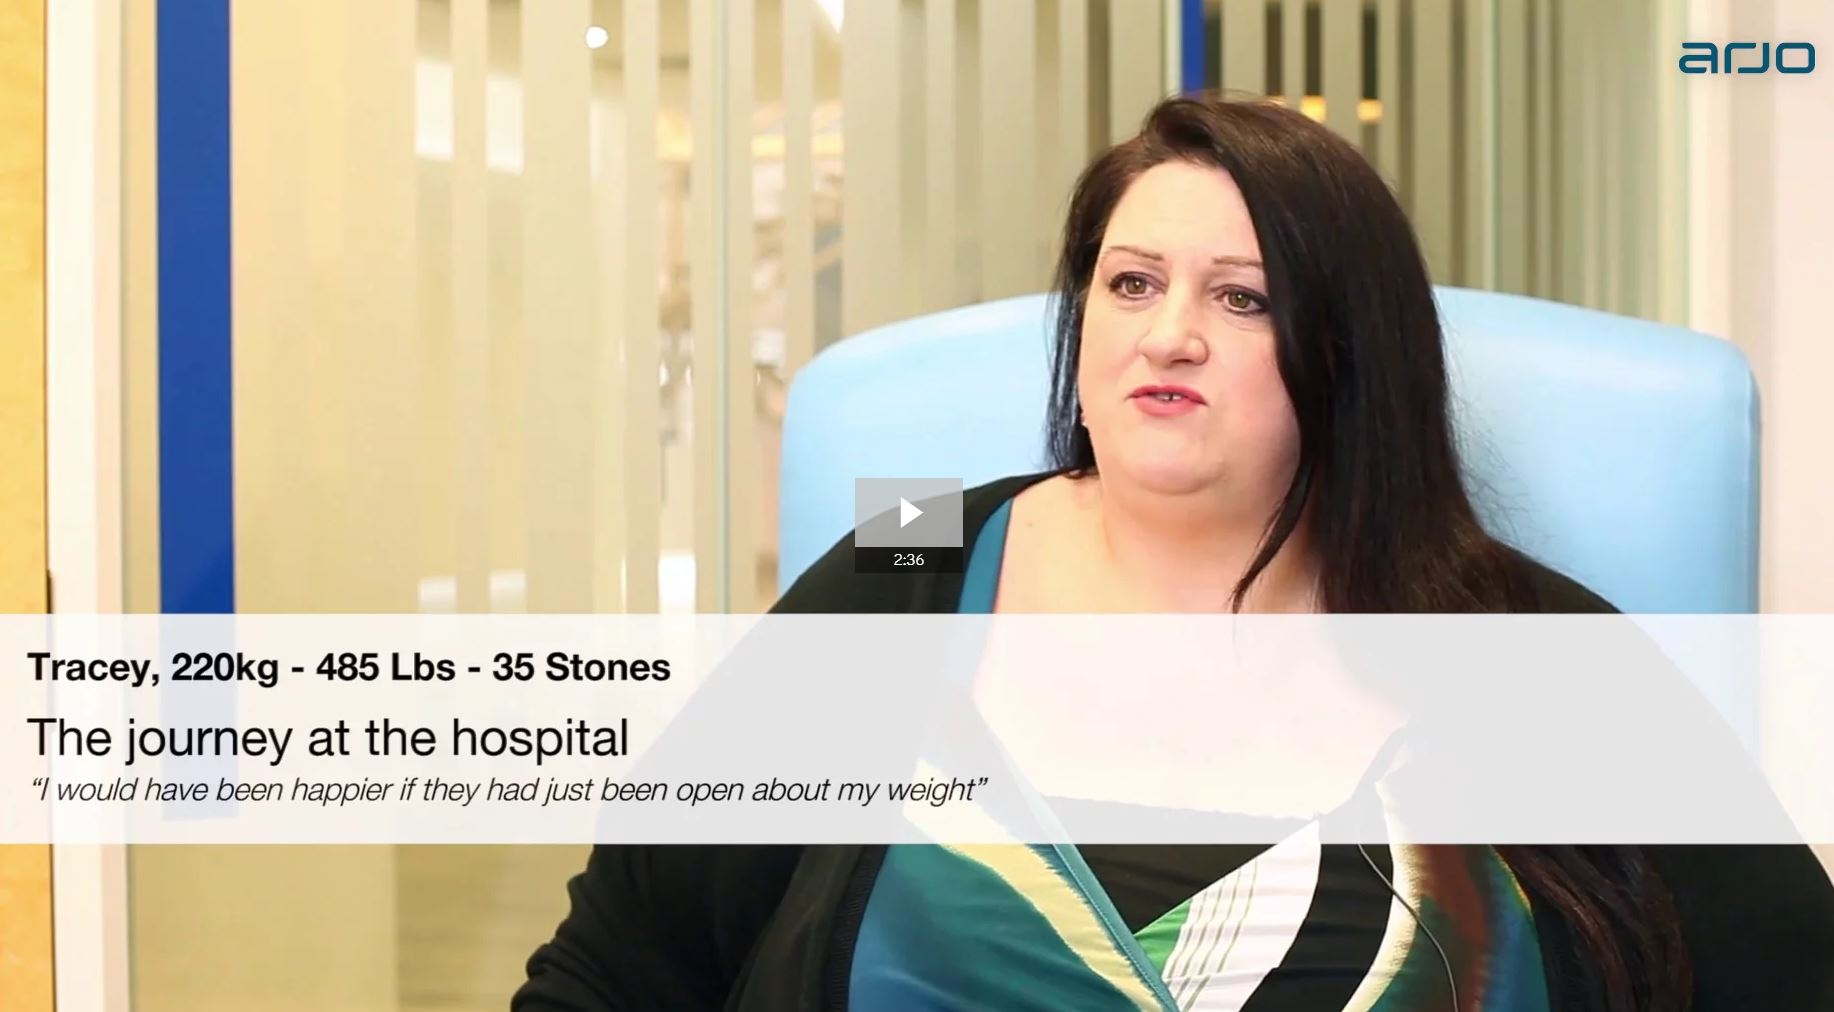 A plus size patient's journey at the hospital